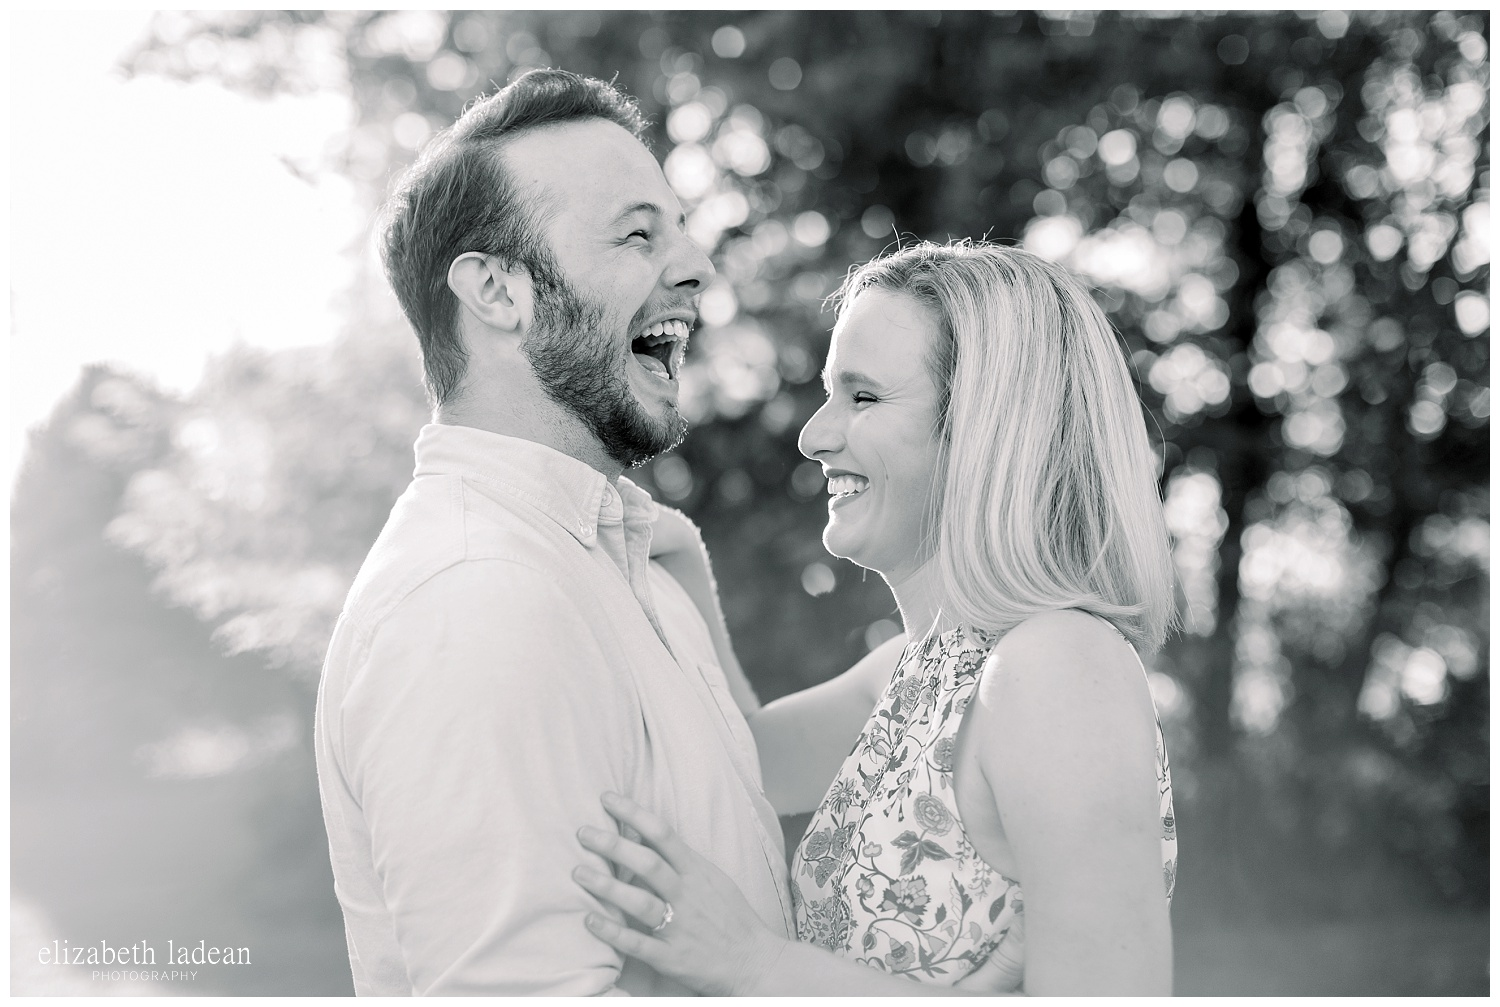 Kansas-City-Adventurous-Engagement-Photos-S+C2018-elizabeth-ladean-photography-photo_0371.jpg